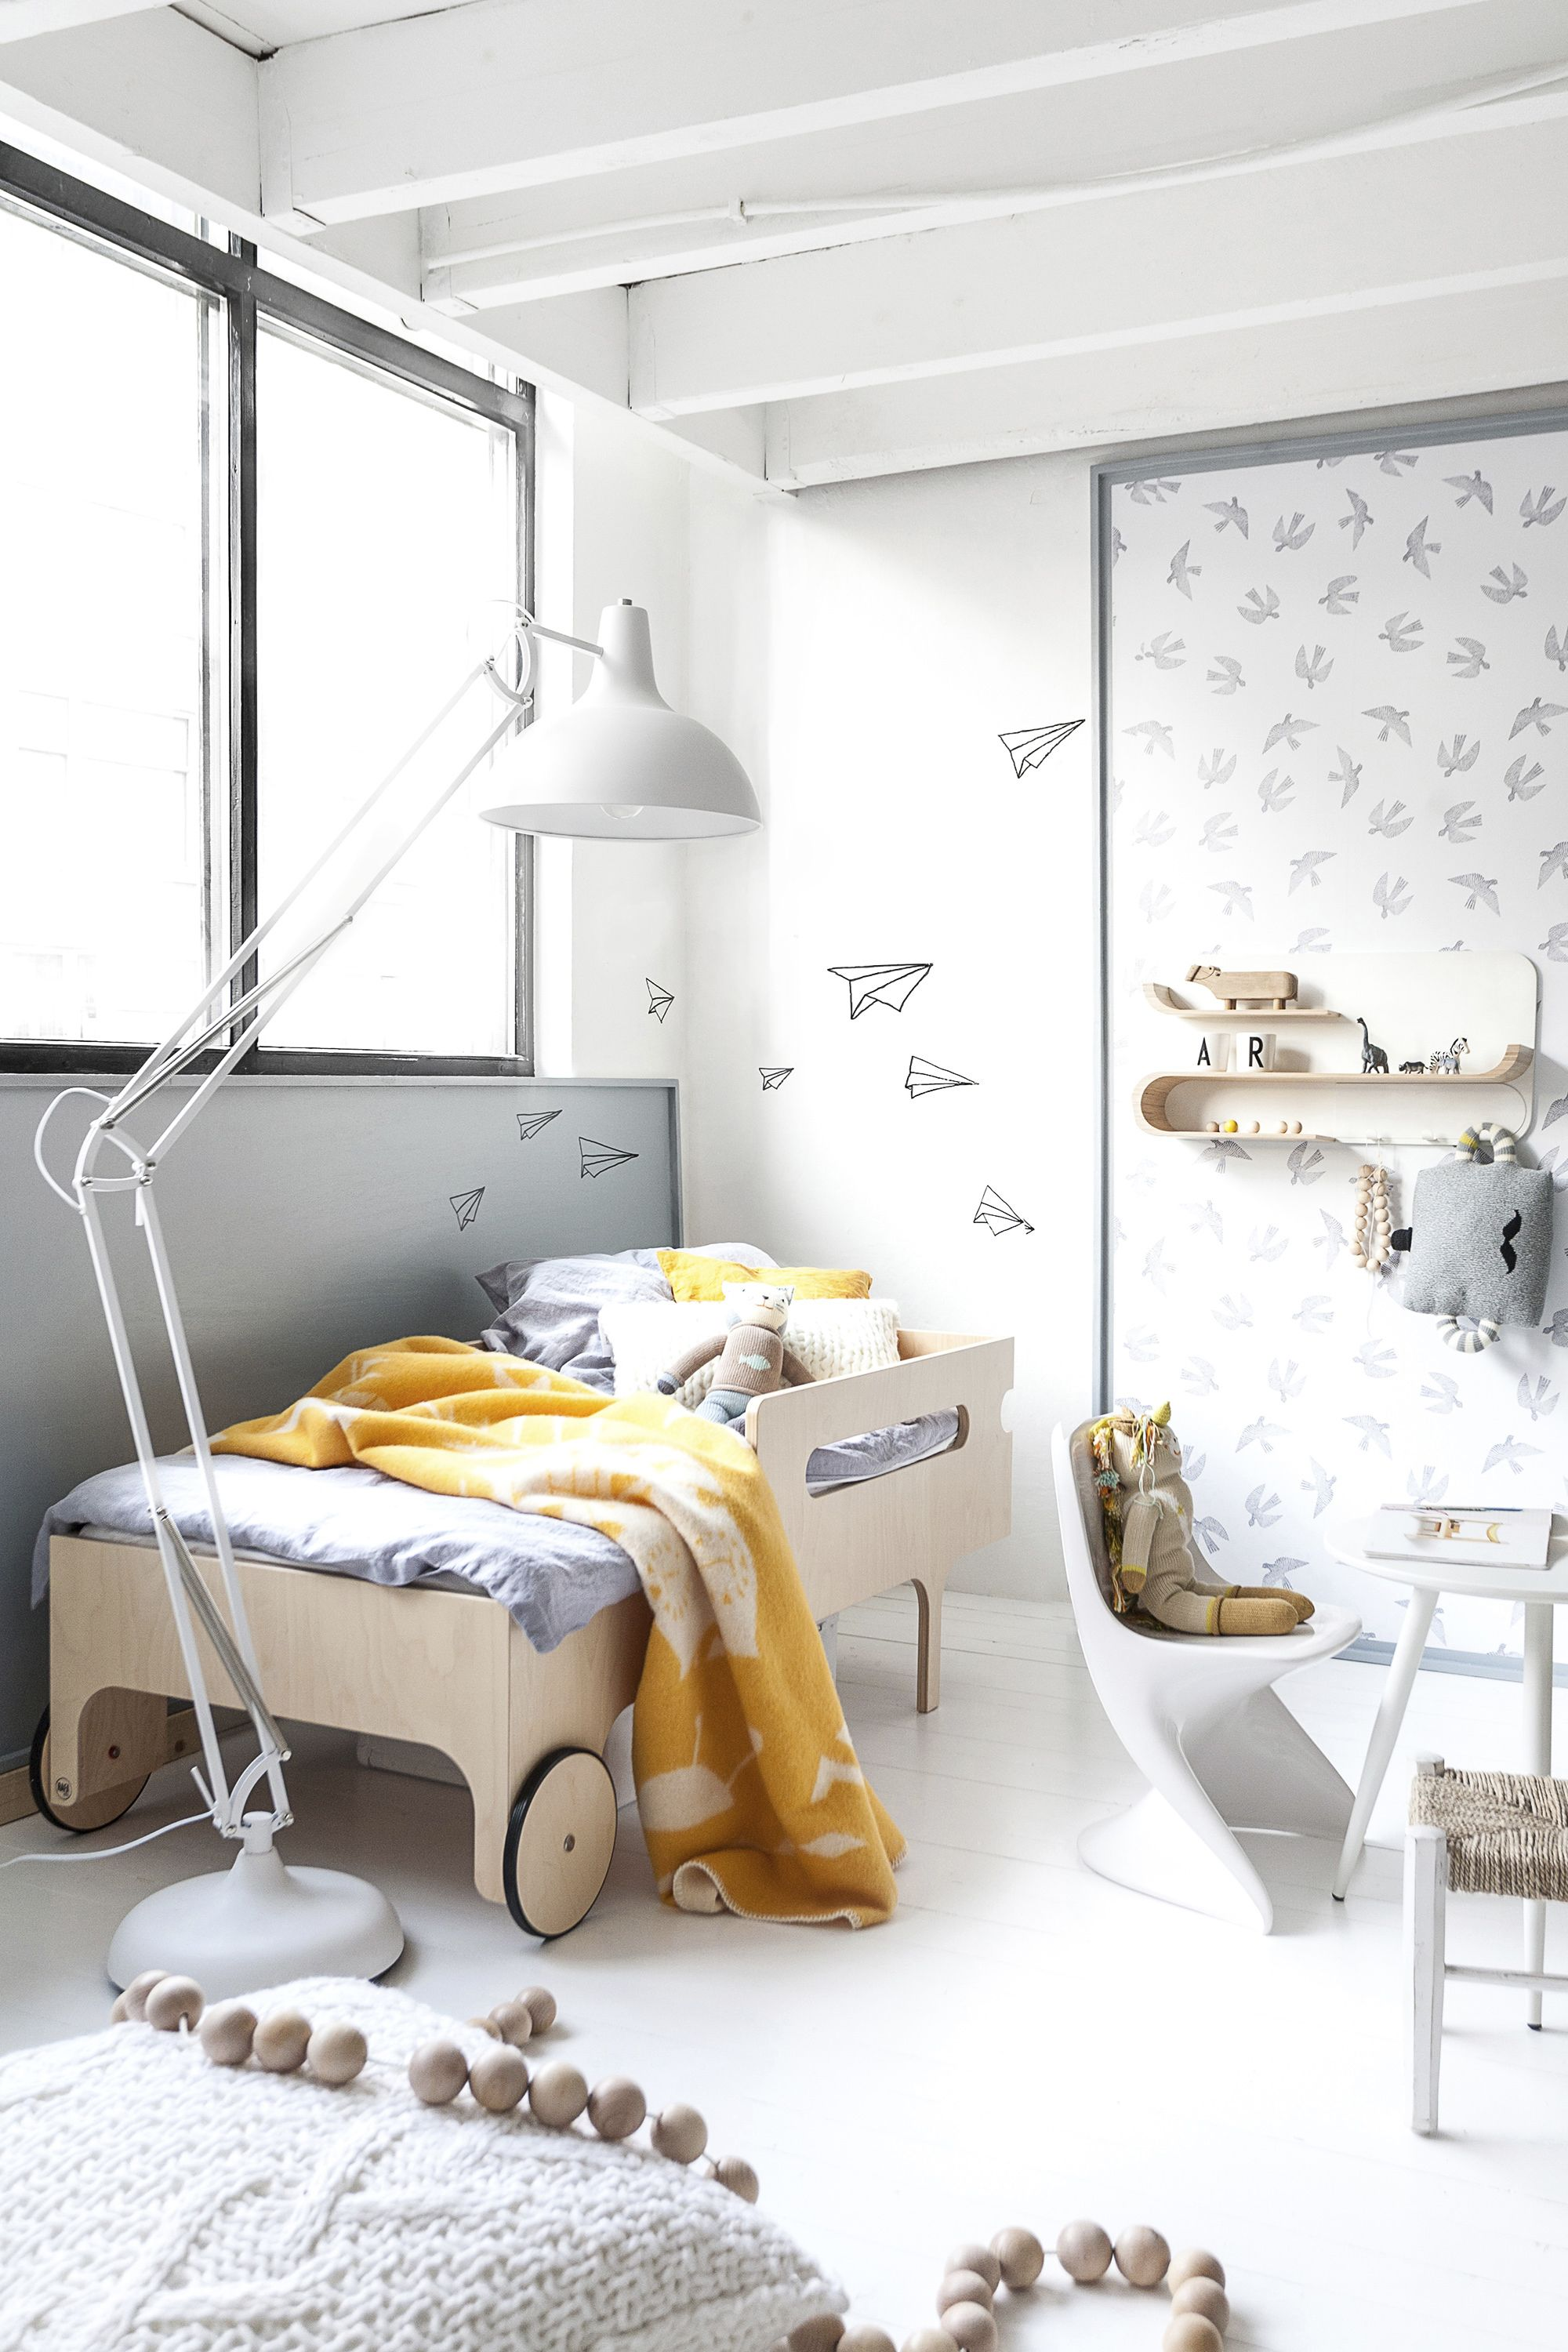 Children's and toddler bedroom ideas